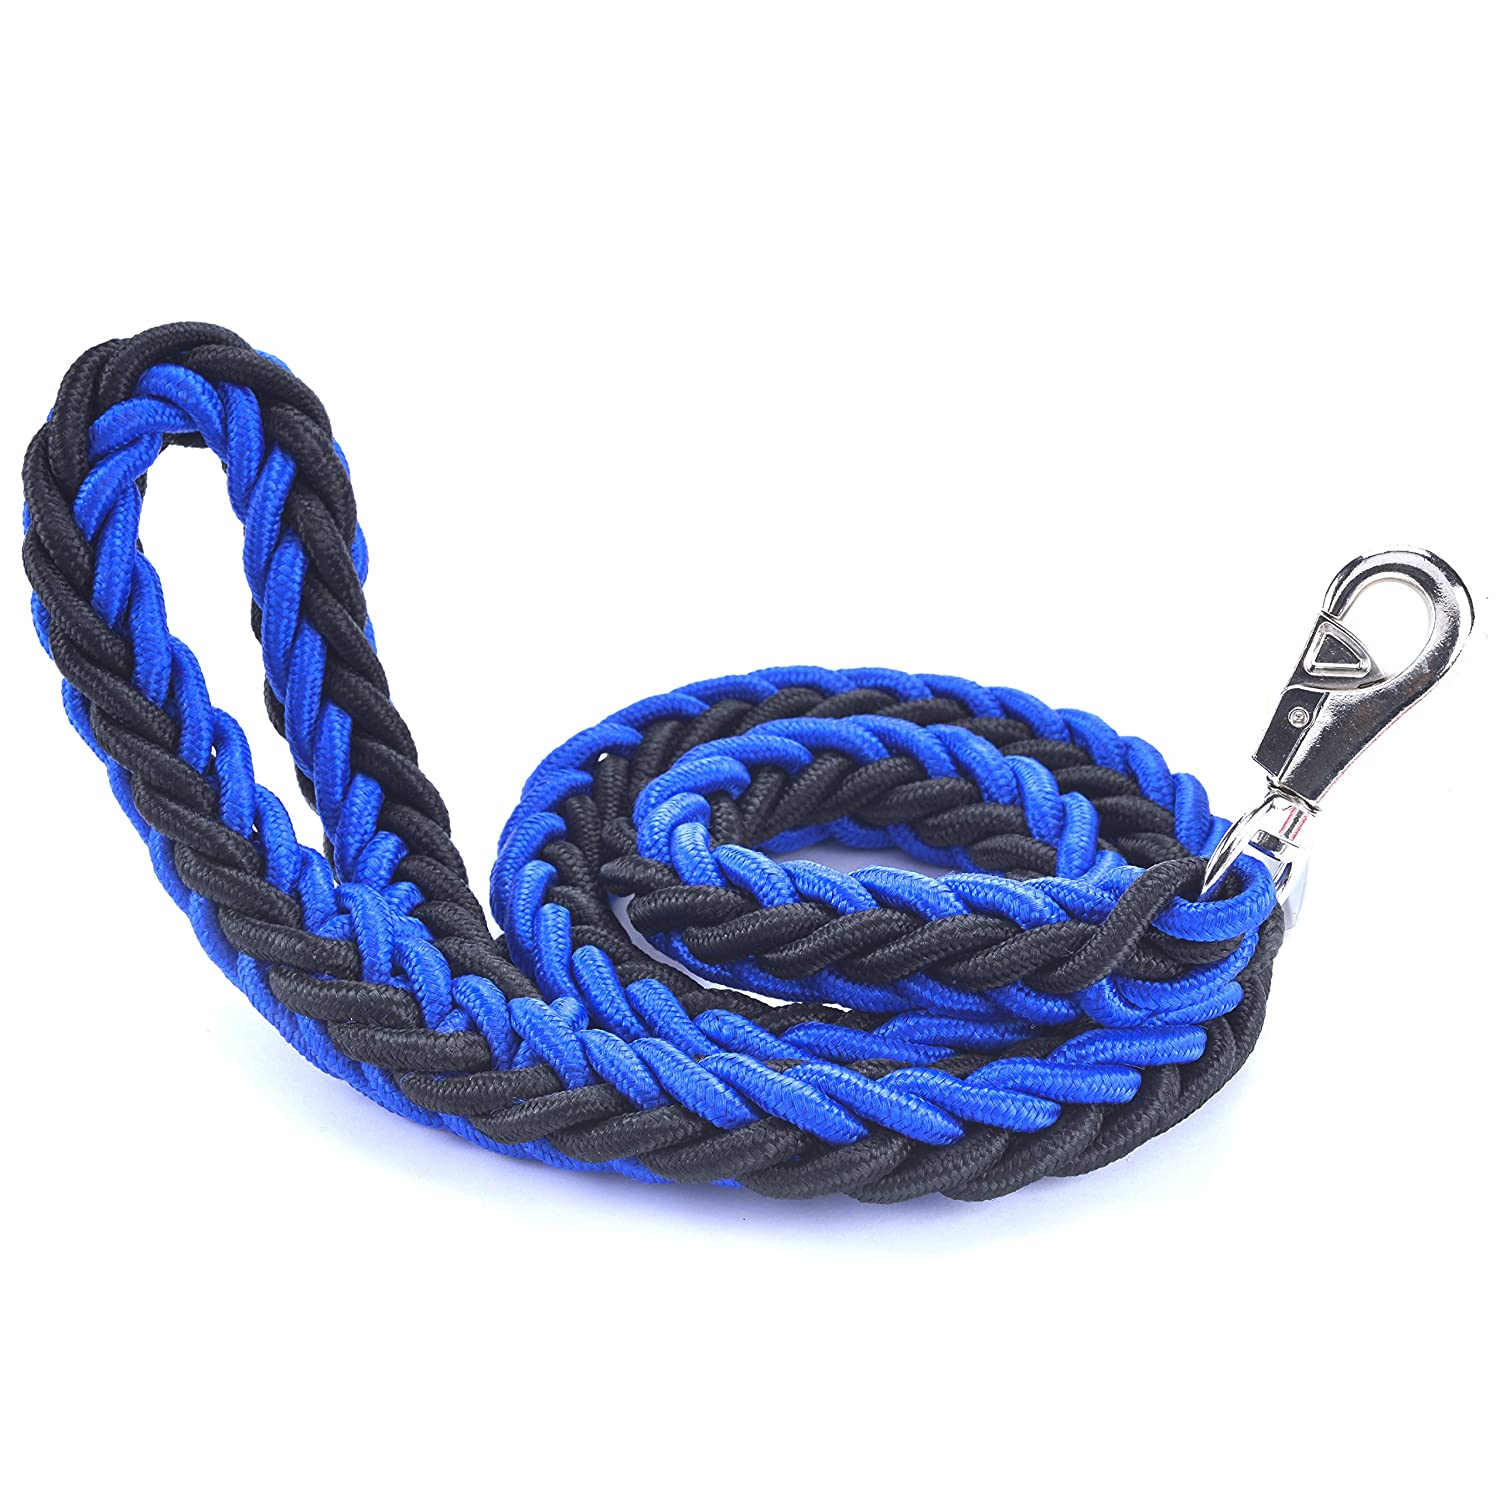 bluee Large bluee Large Cdycam Heavy Duty Braided Pet Dog Training Leash,Dog Walking Leads,4ft Thick Durable Dog Rope Leash for Small Medium Large Dogs (Large, bluee)